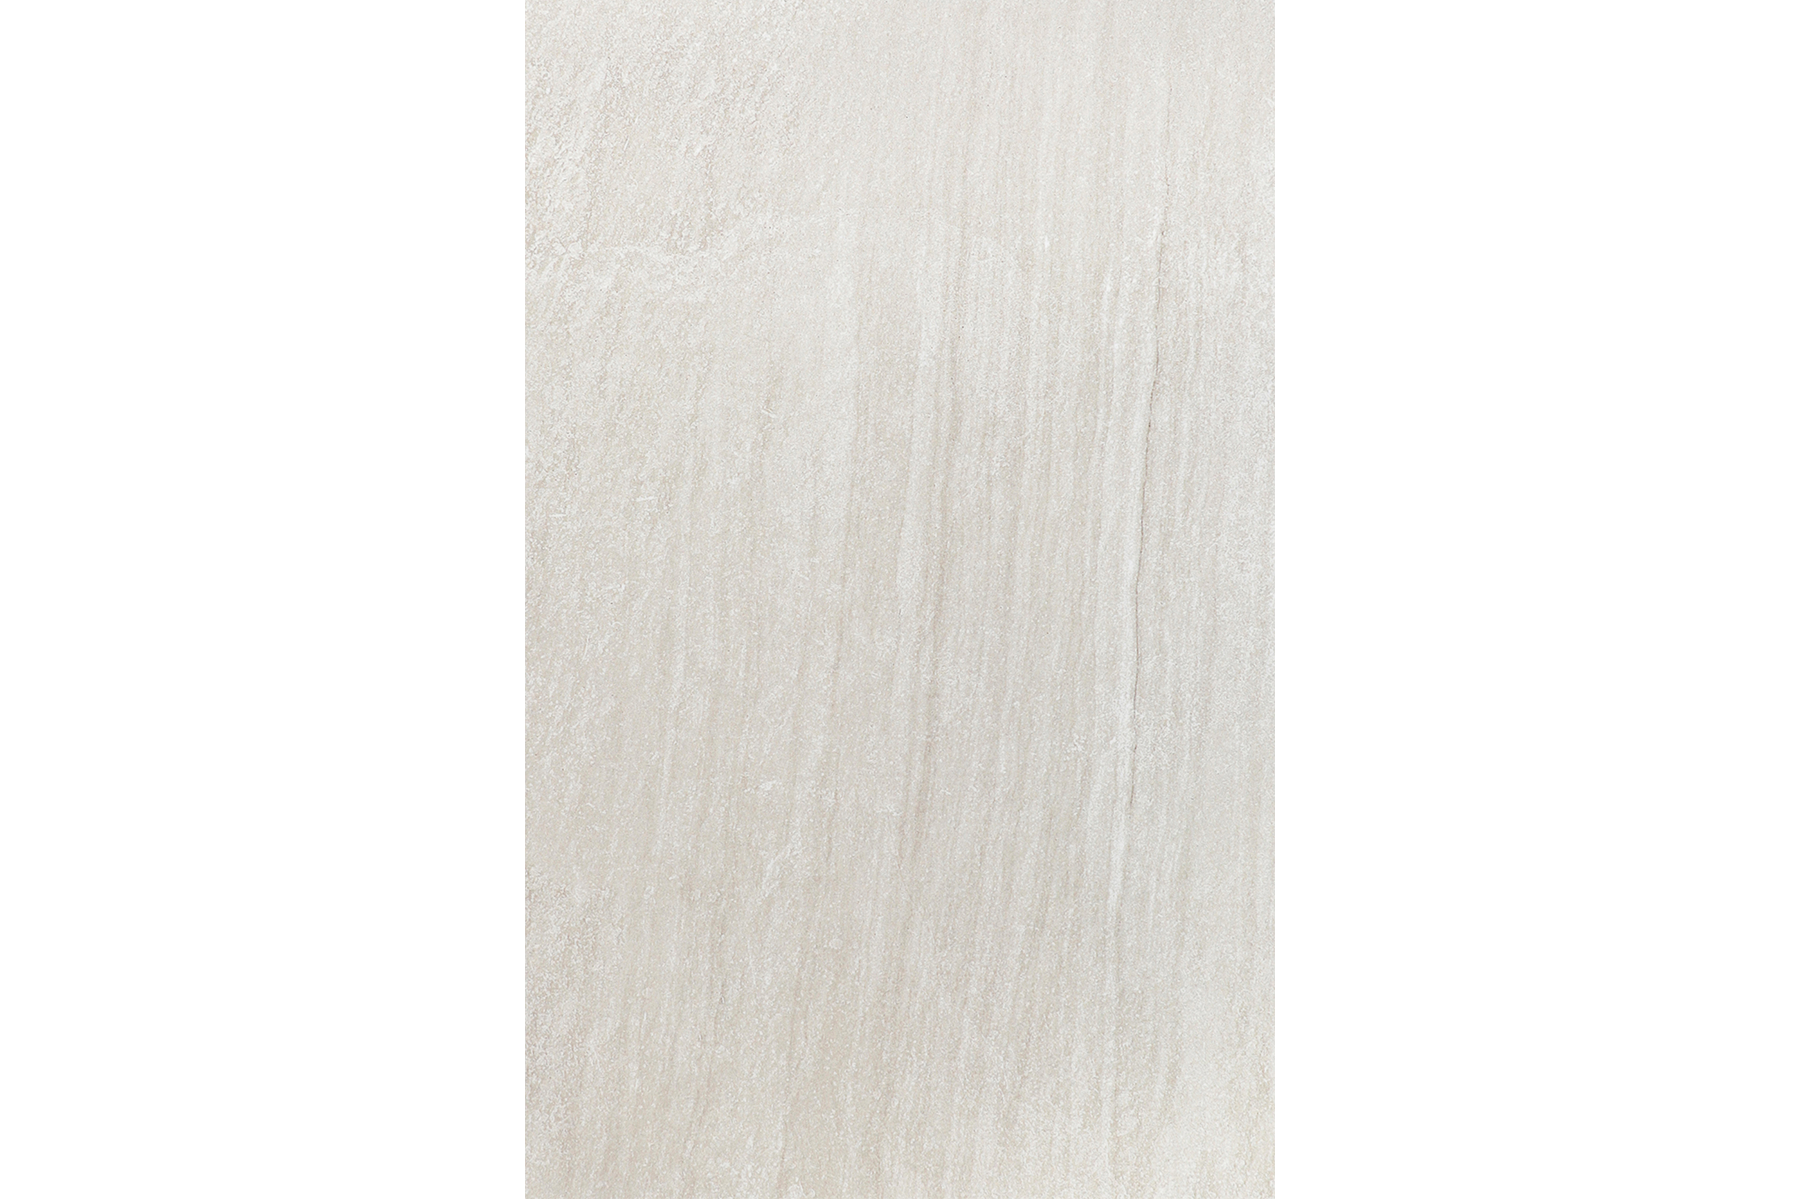 16x10 Levian Snow Ceramic Wall Tile